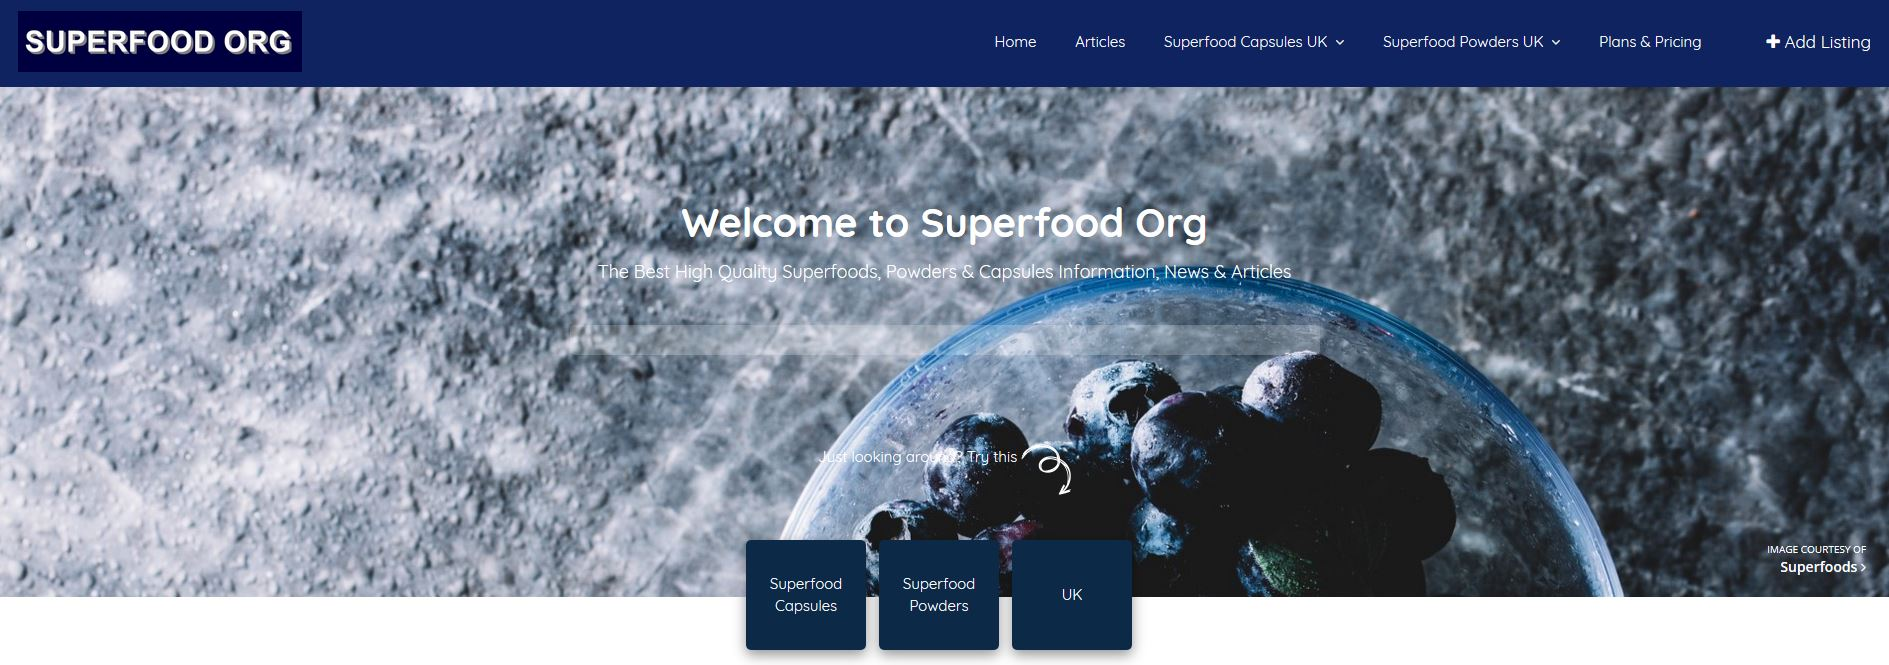 Superfoods Org Announces News Channel Launches with More Than 1000 Videos